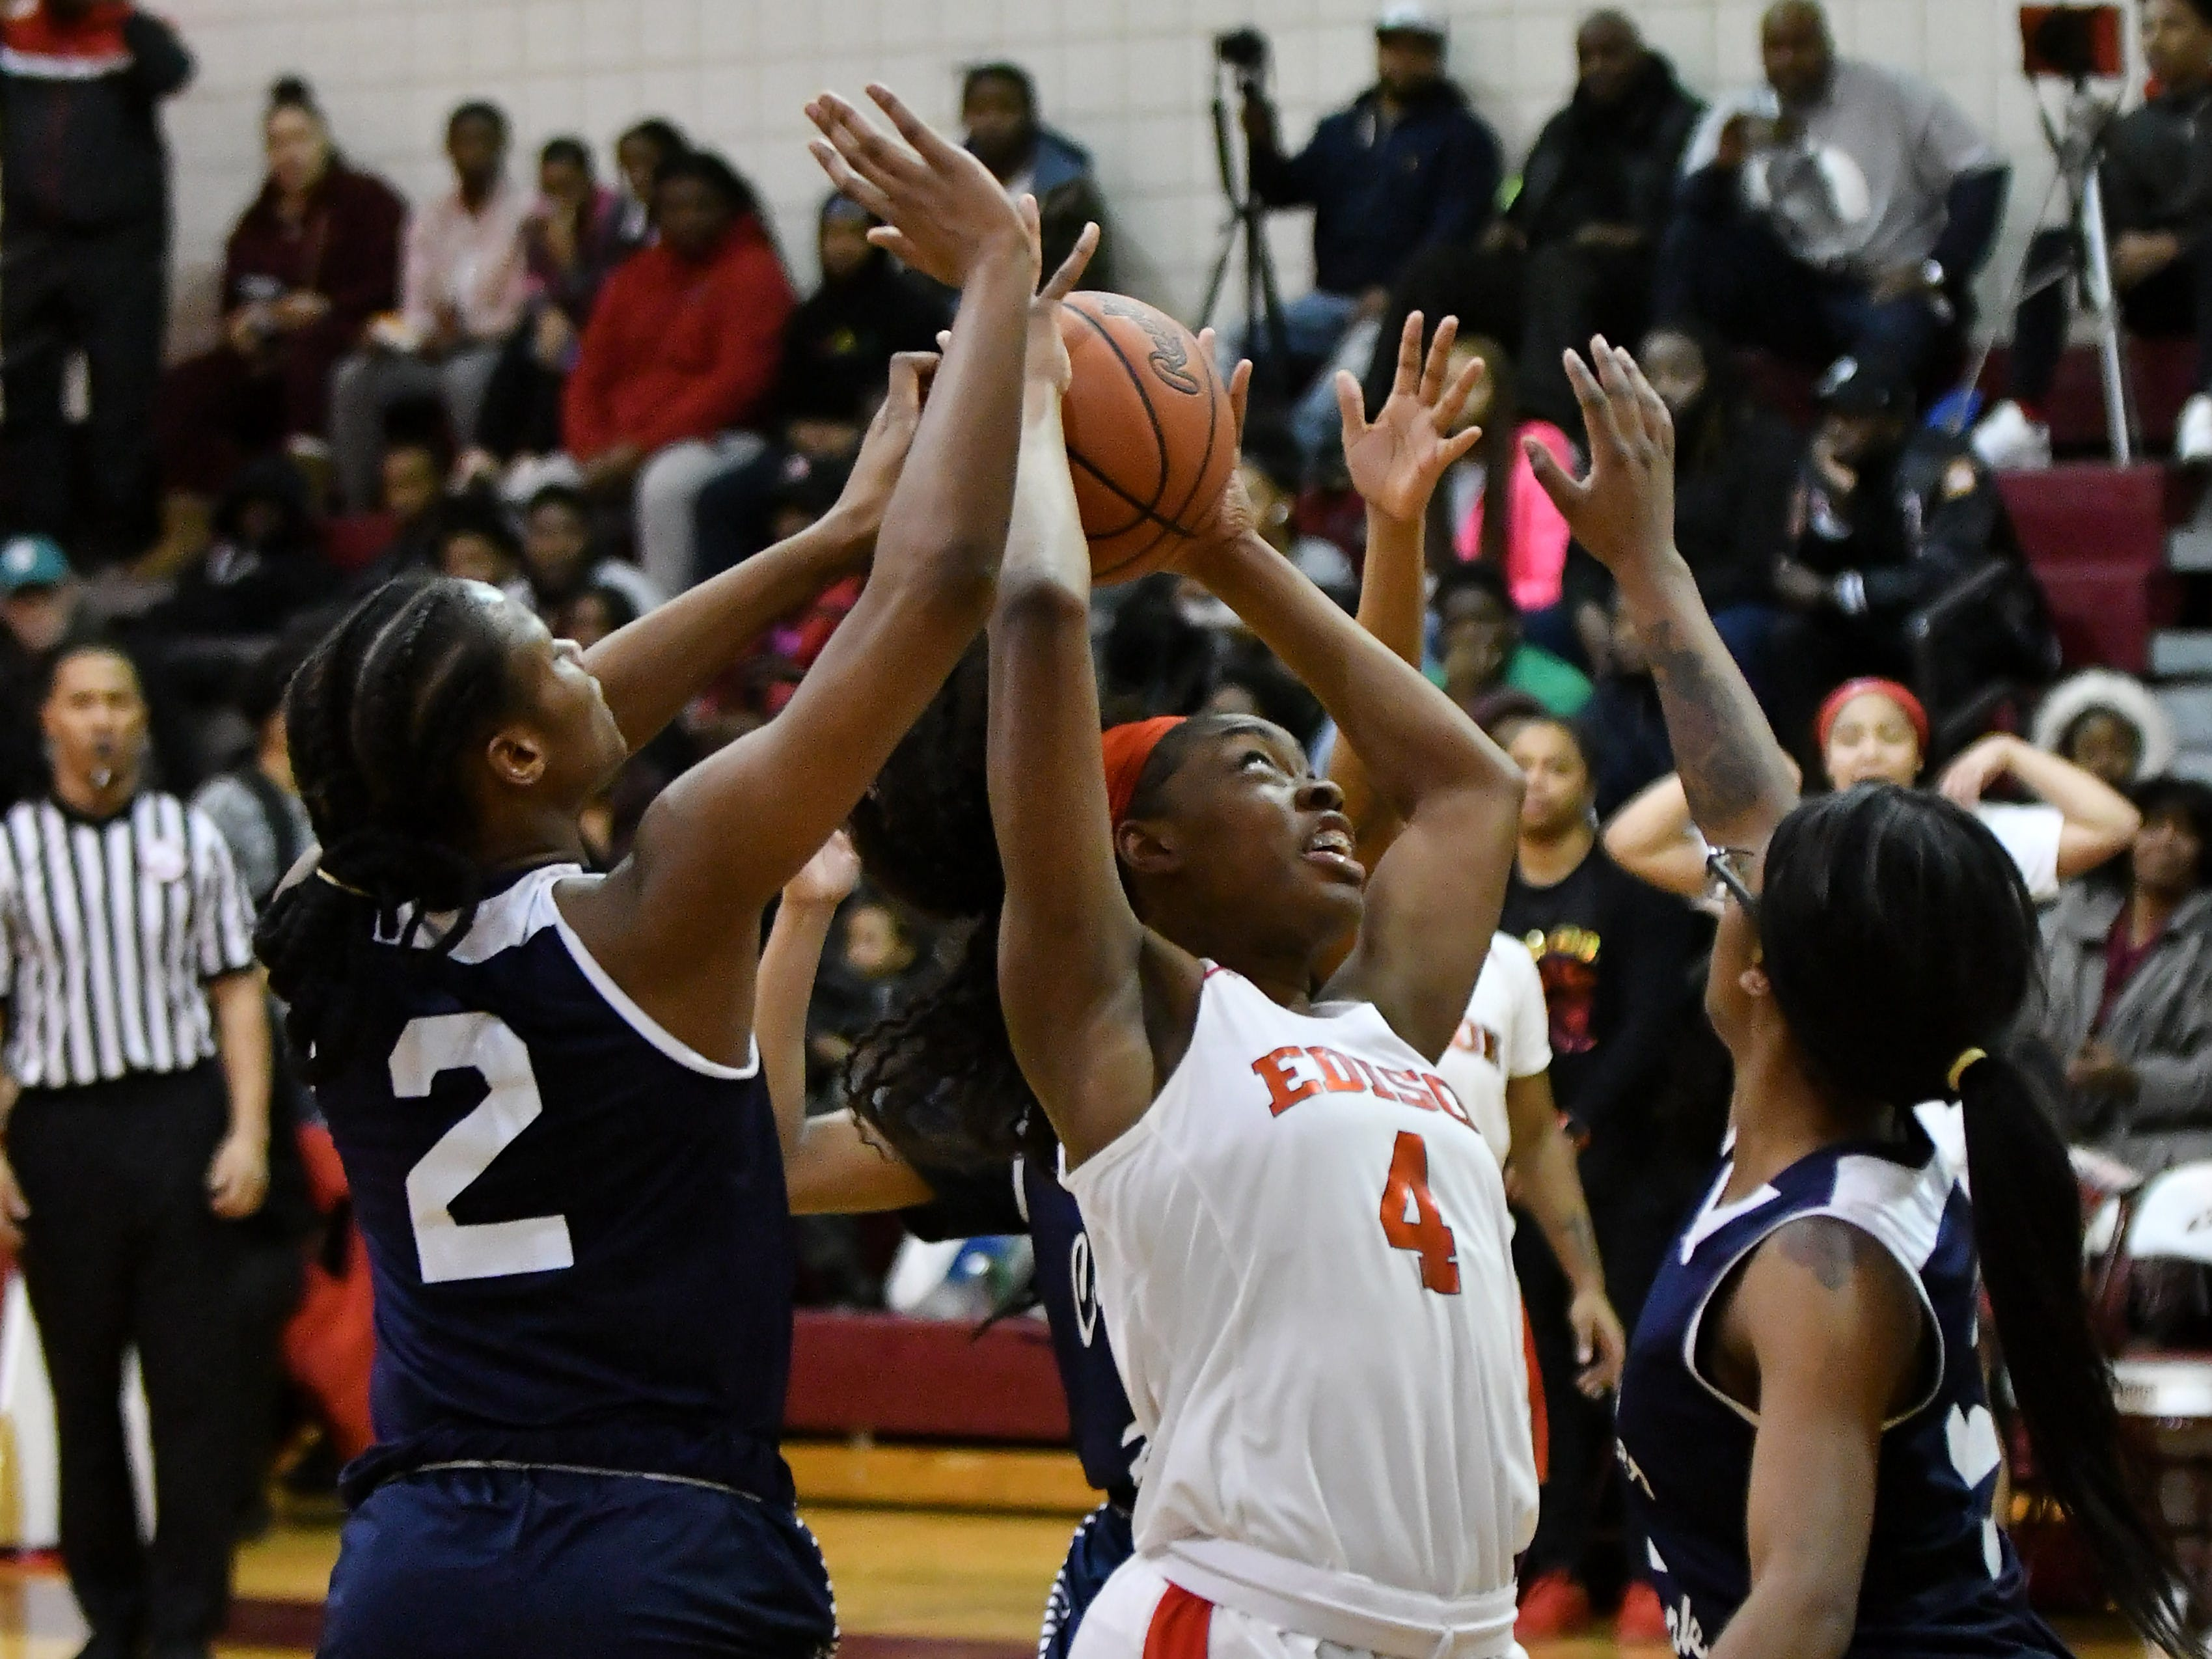 Detroit Edison's Ariel Jenkins tries to hold onto the ball amidst Chandler Park's Tiana Mason (2) and Anaya Kennedy, right, in the second half.